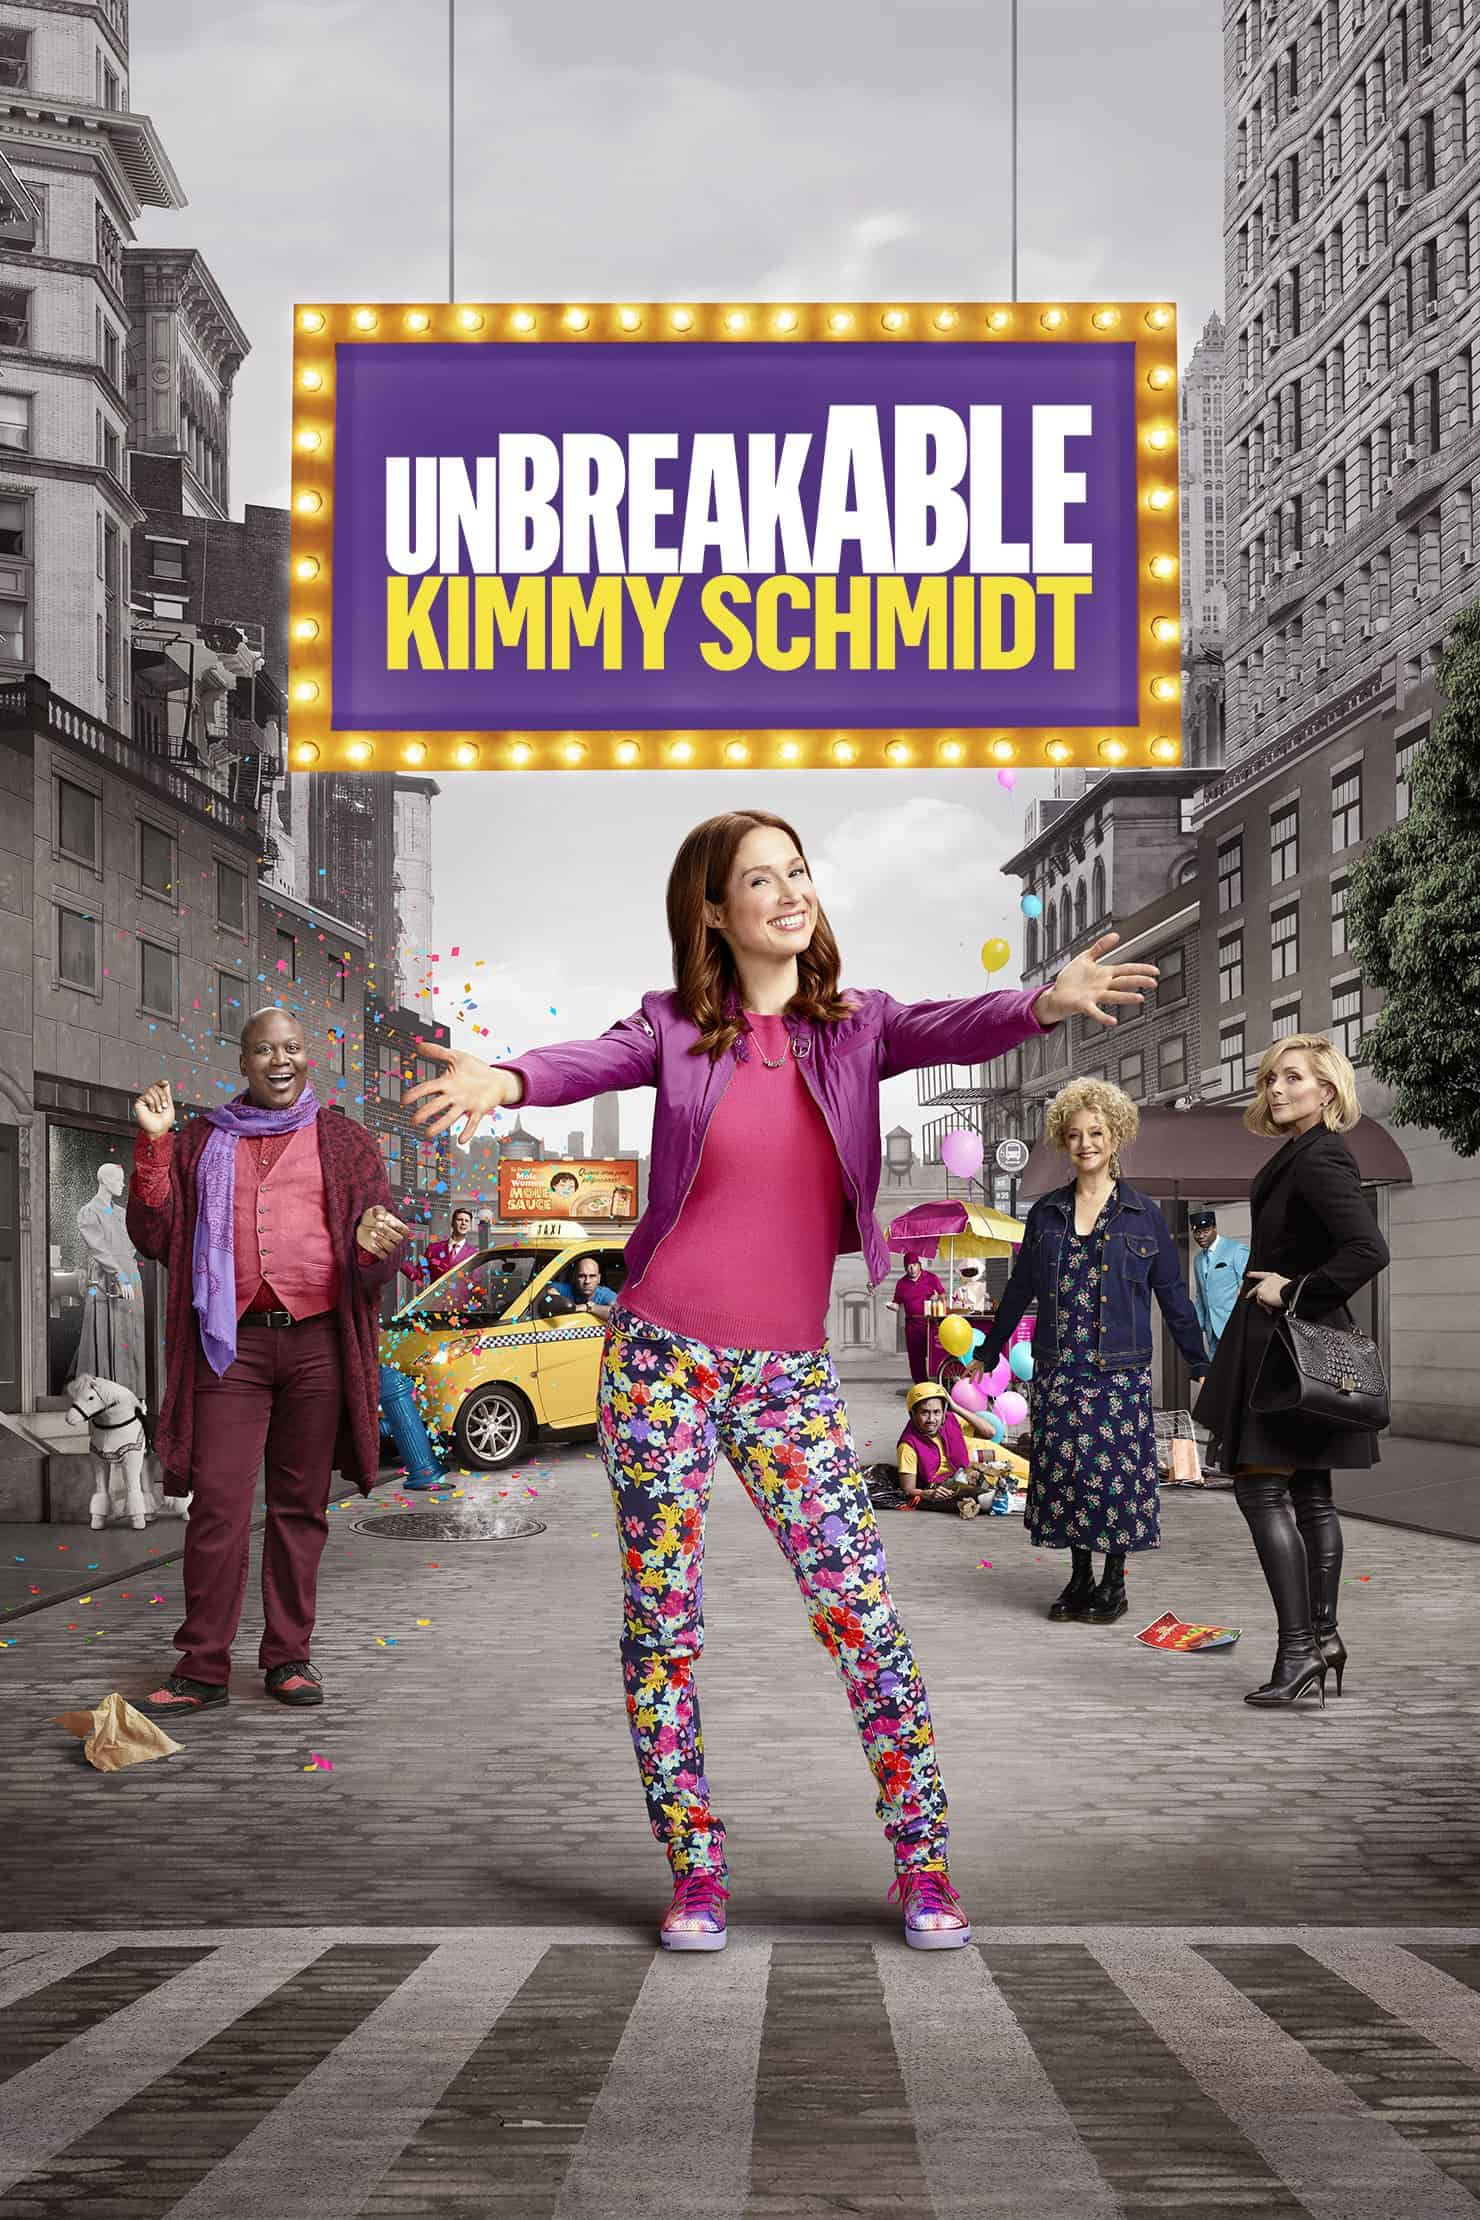 Unbreakable Kimmy Schmidt, 2015